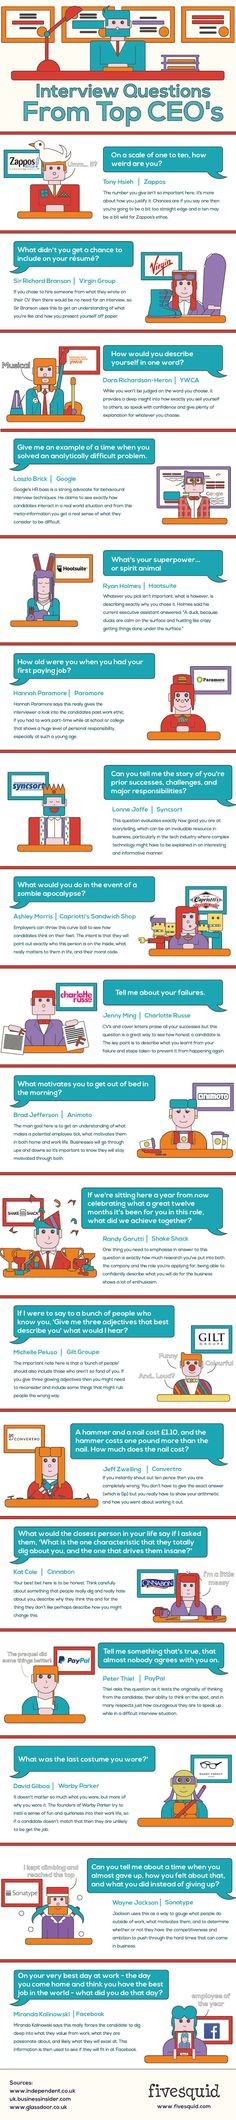 18 Unusual Job Interview Questions Top CEOs Ask [Infographic]